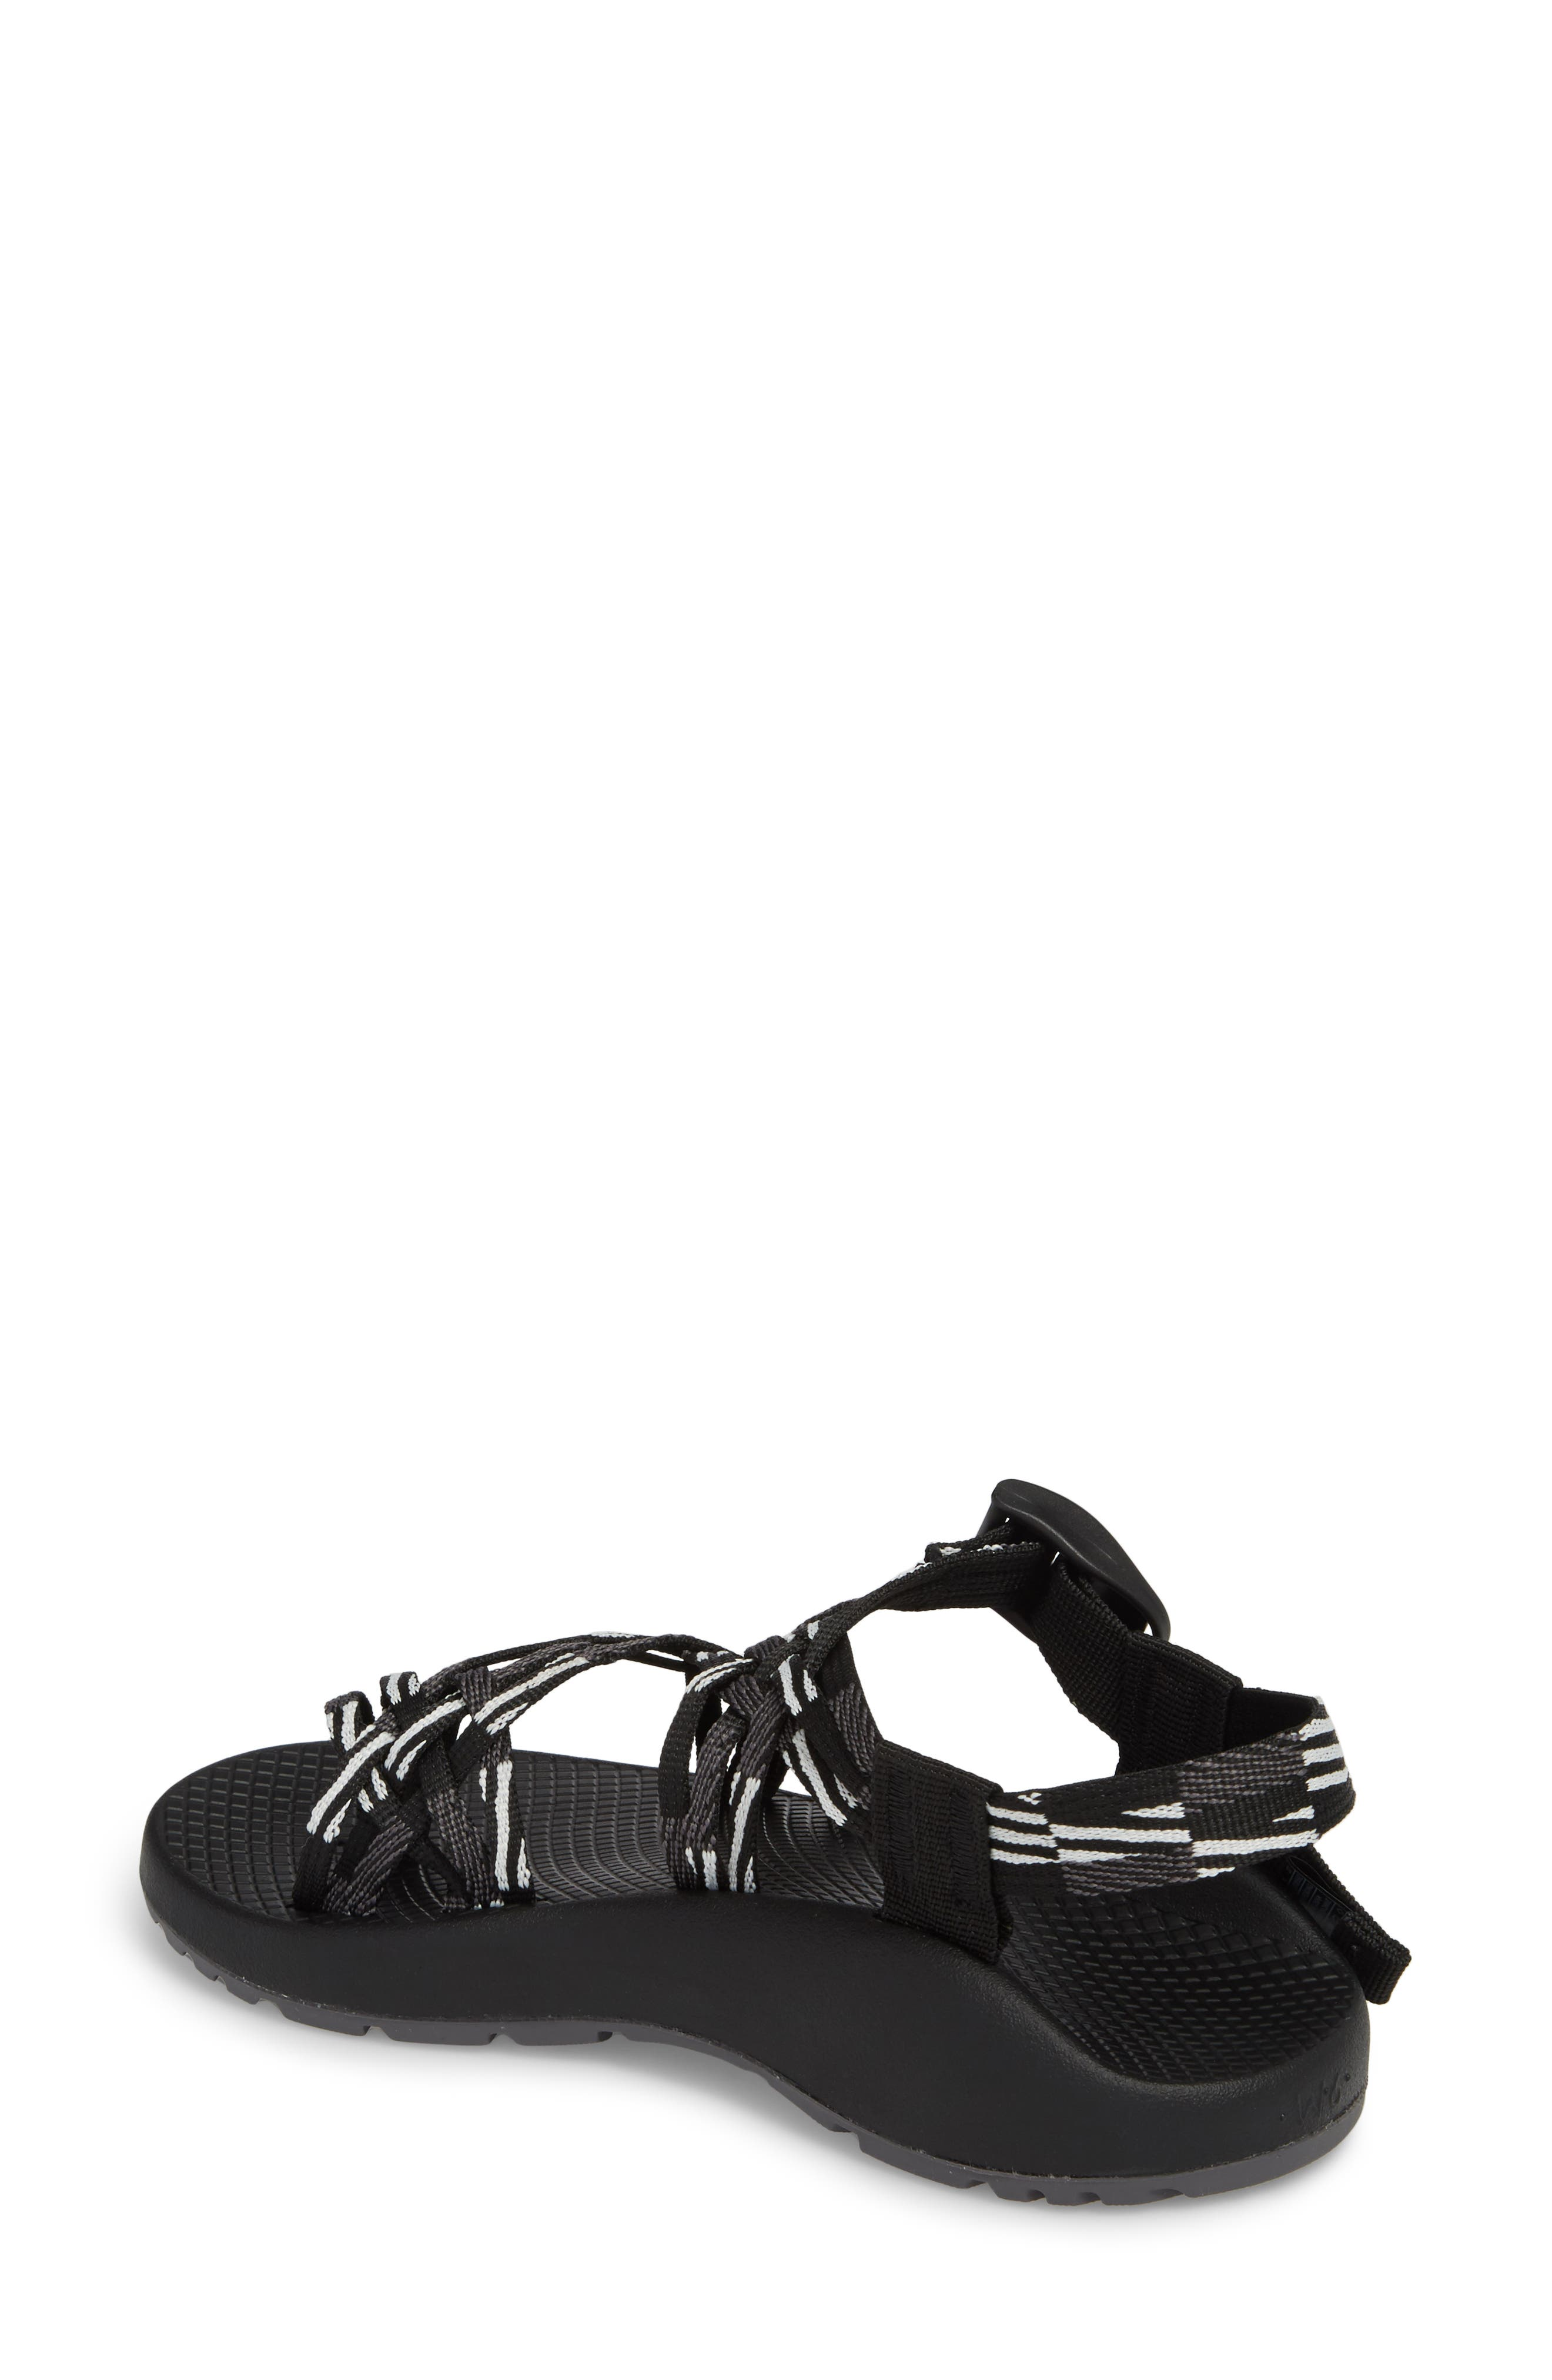 ZX/3<sup>®</sup> Classic Sandal,                             Alternate thumbnail 2, color,                             SCATTER BLACK / WHITE